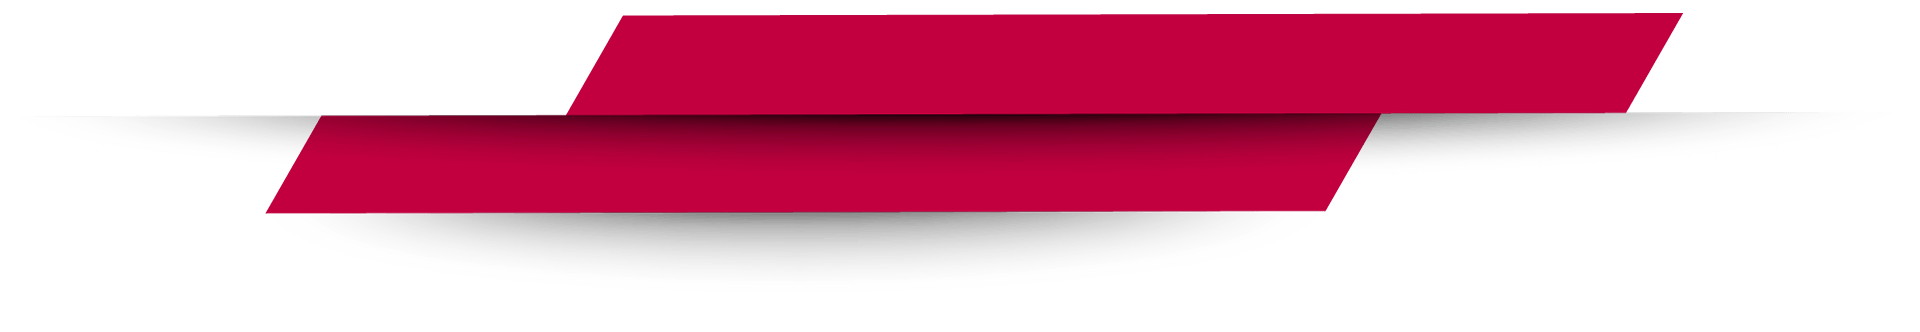 Red divider png. Index of pictures generic